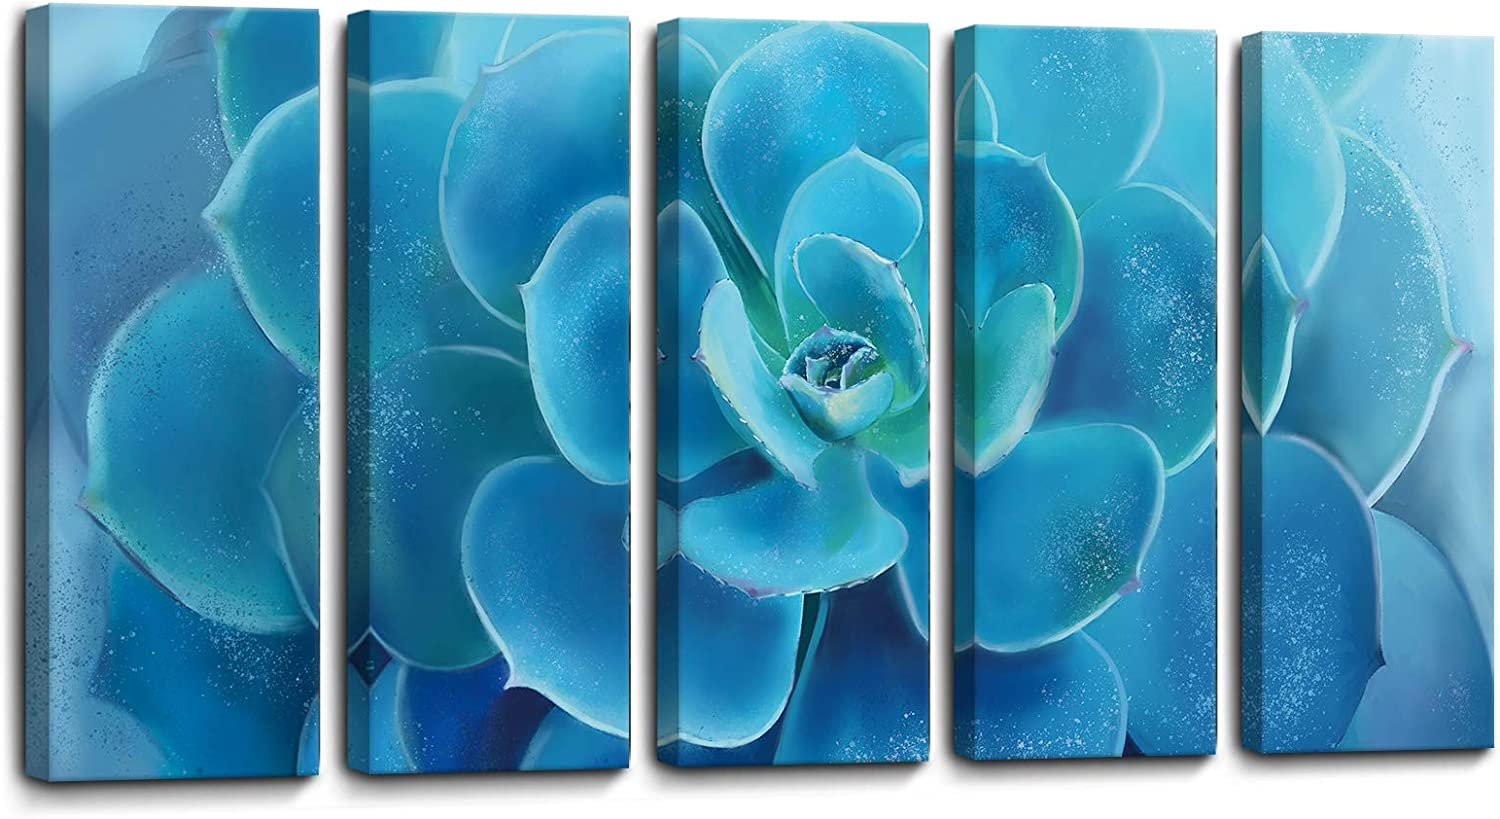 Wall Art for Living Room Large Canvas Art Work Succulents Pictures Print Wall Decor for Bedroom 5 Pieces Framed Modern Popular Wall Decorations Blue Flower Size 16x40x5 Easy to Hang